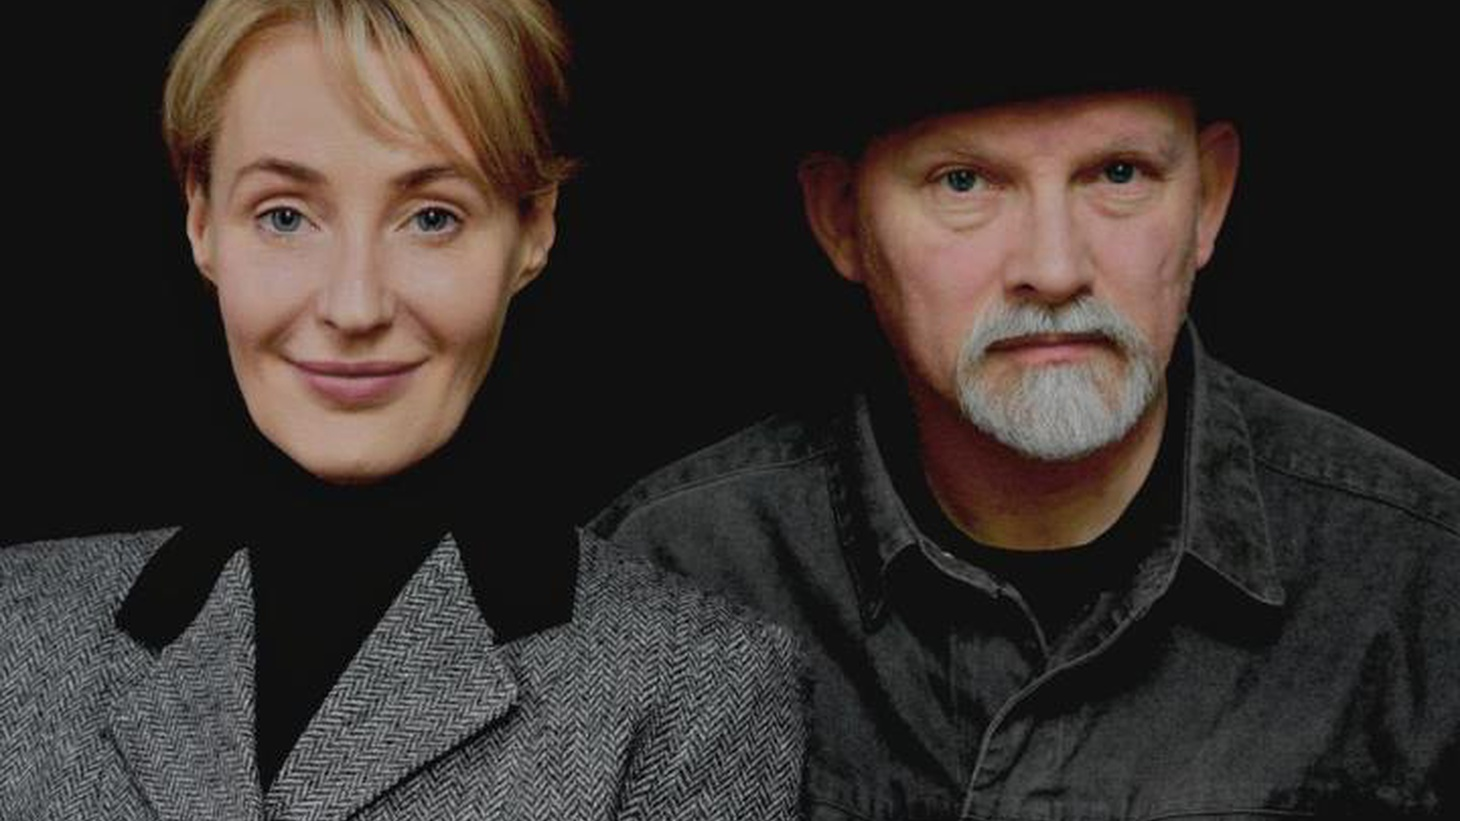 Dead Can Dance are a truly unique and legendary outfit who evoke music of the Middle Ages...